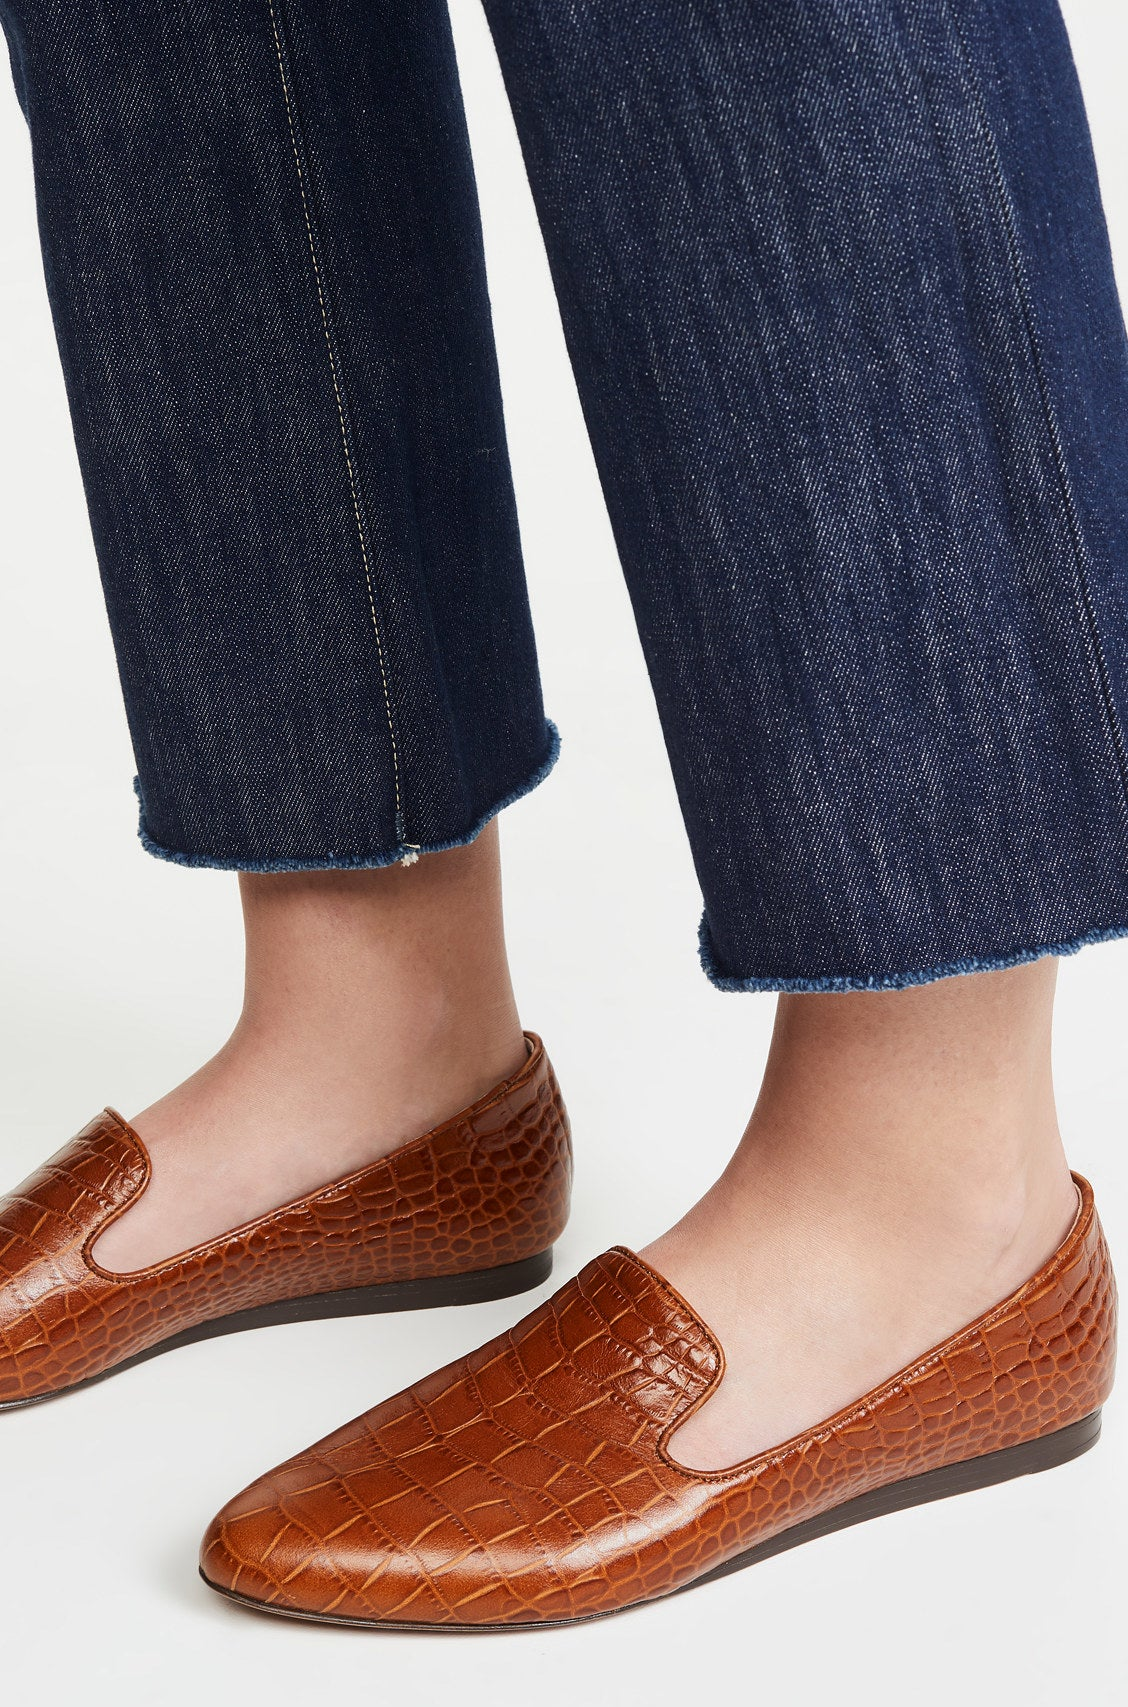 The Veronica Beard Griffin Loafers.